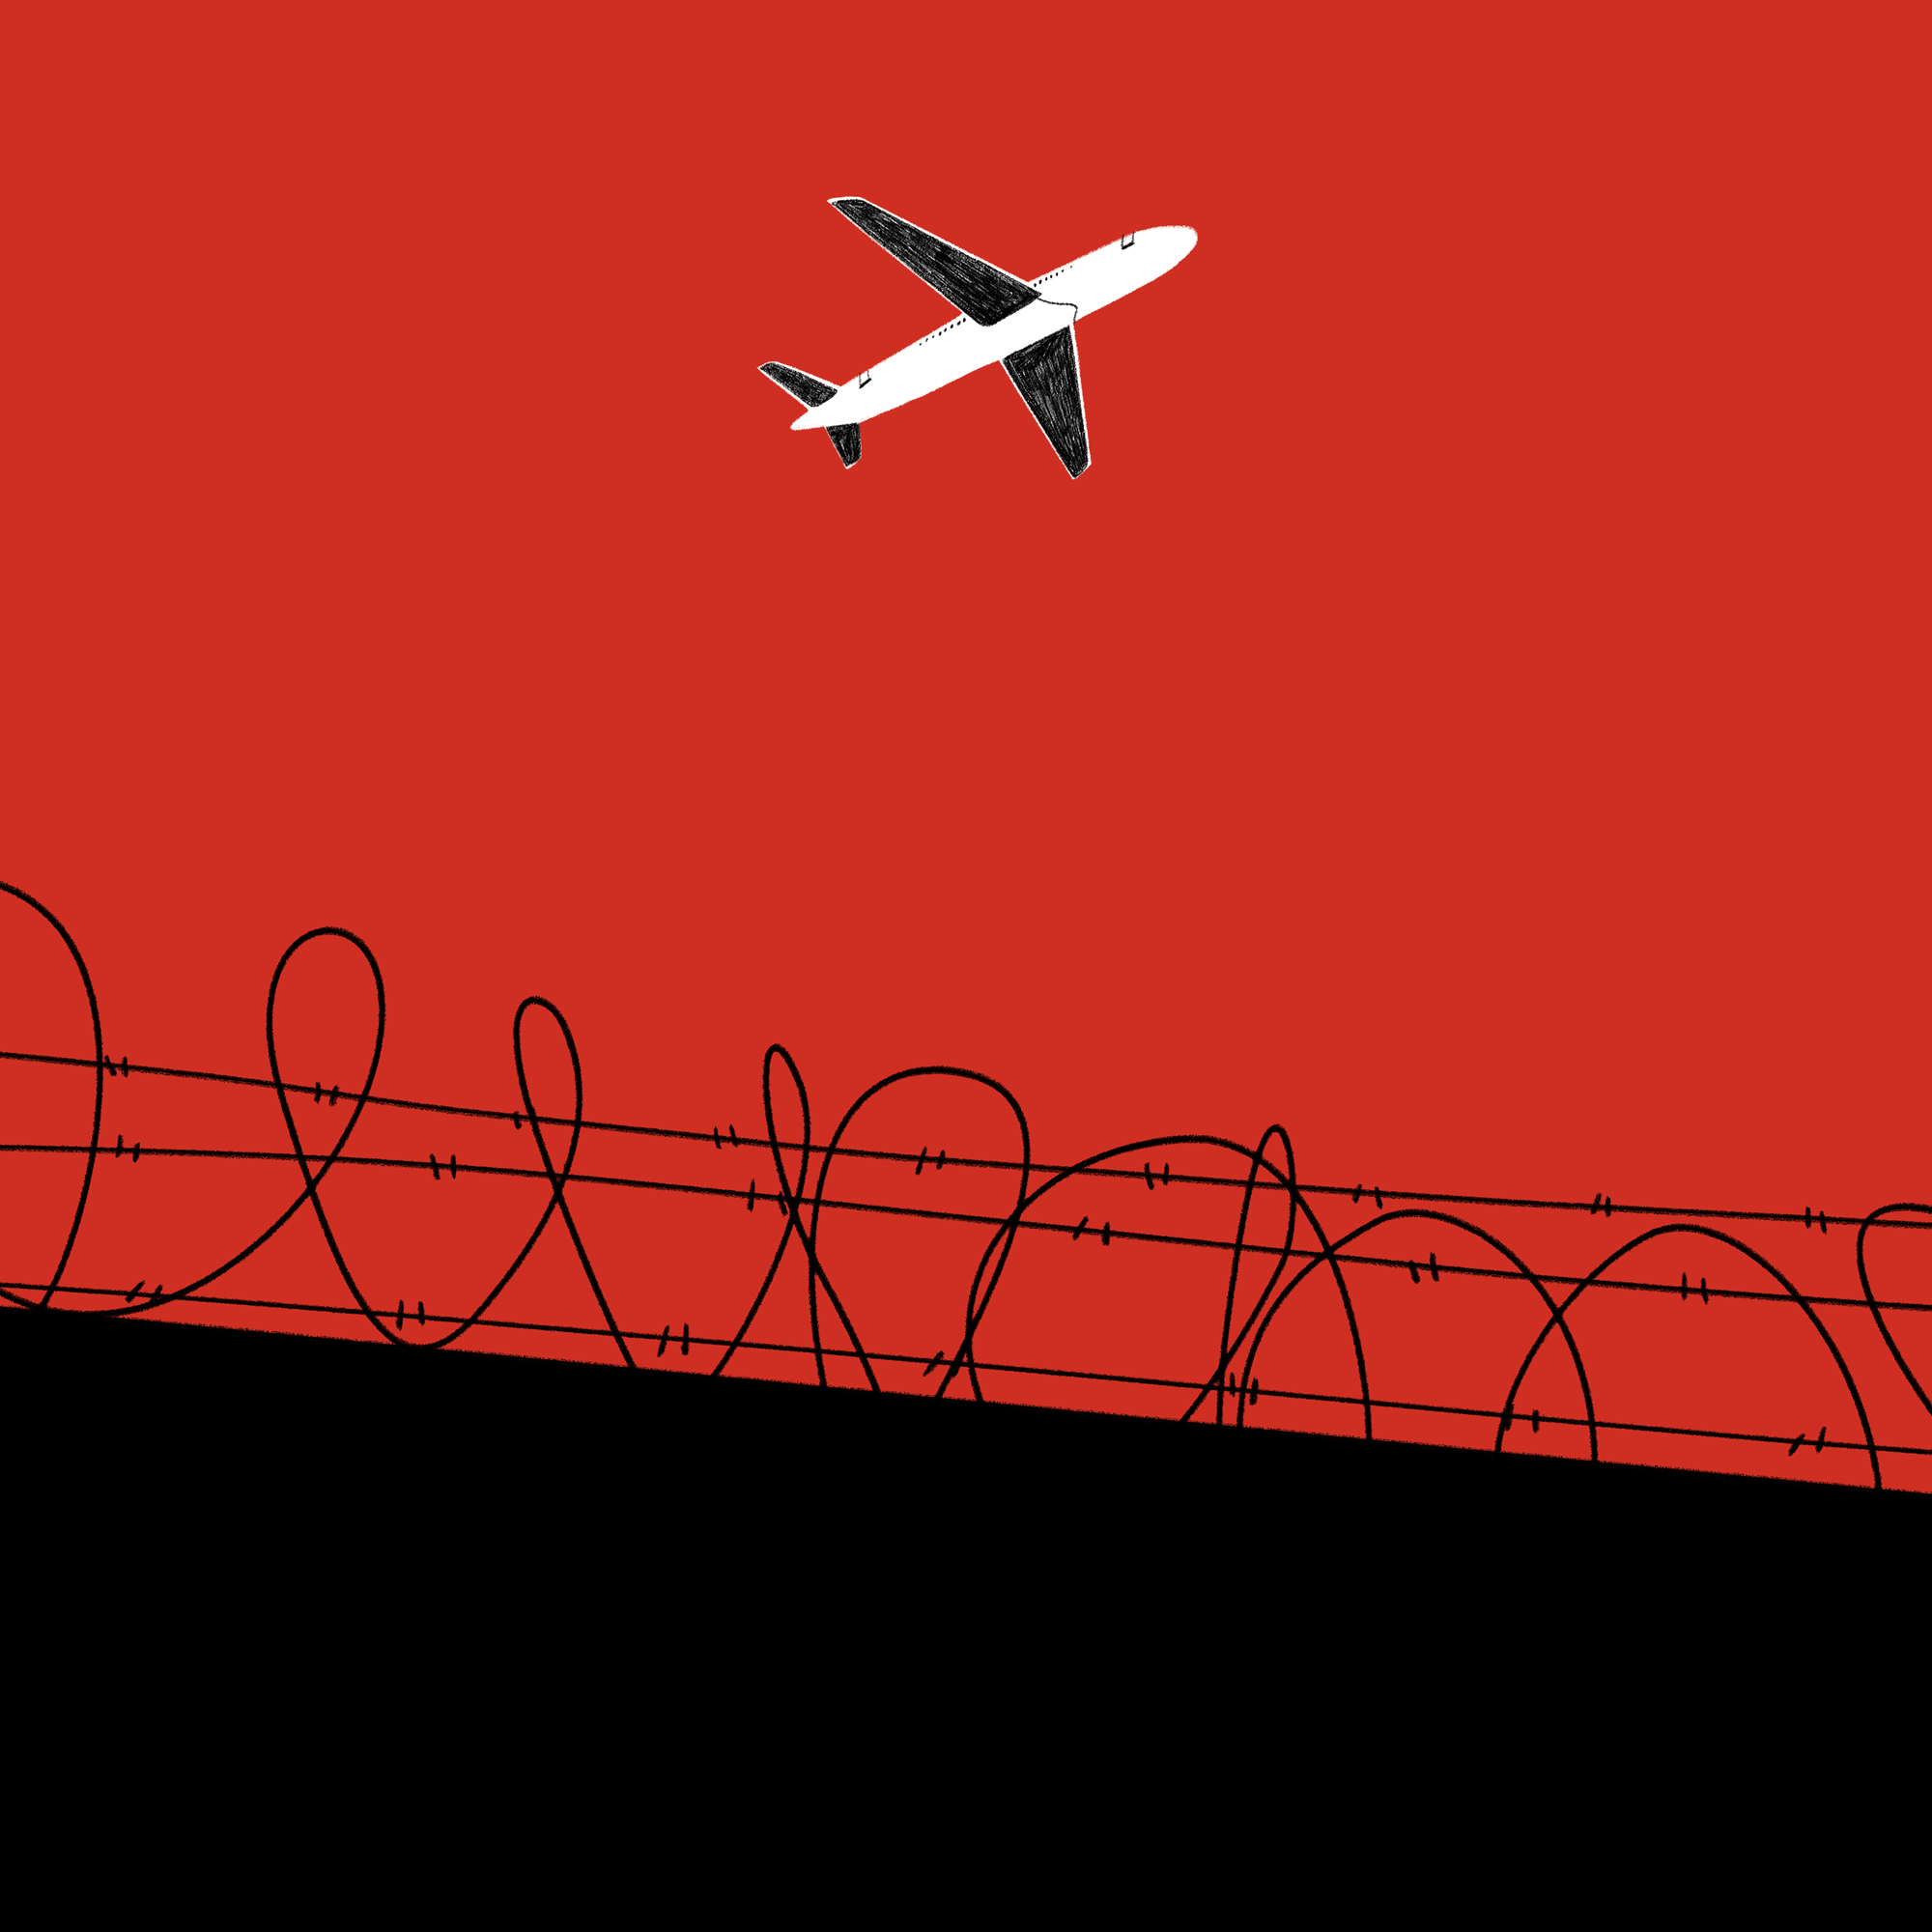 Why Trump's Wall Won't Work